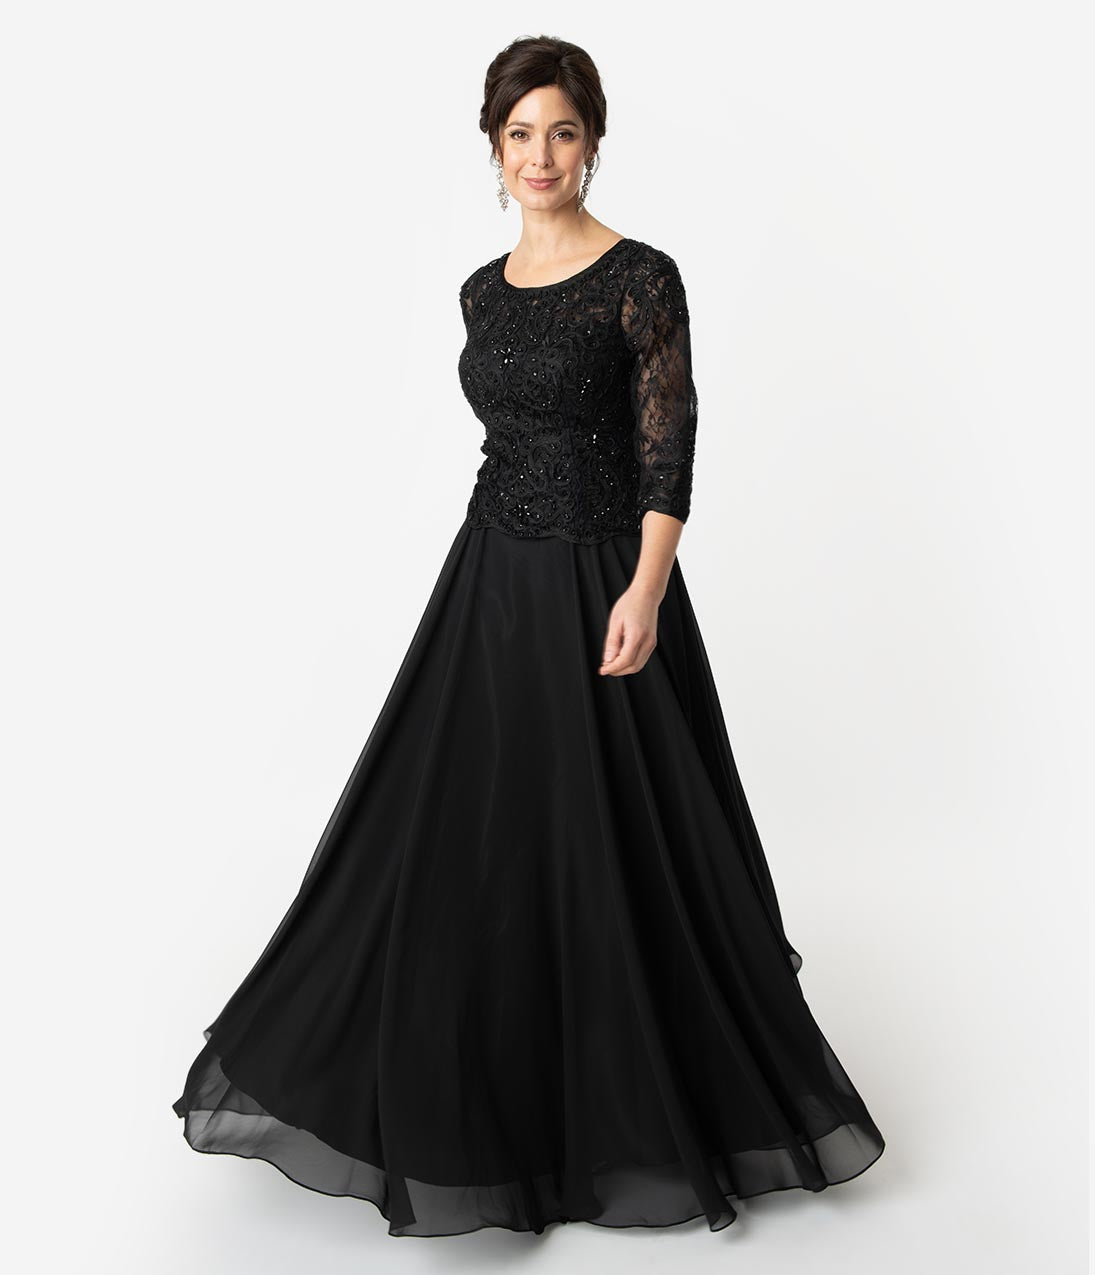 1940s Formal Dresses, Evening Gowns History Black Embellished Lace Sleeved Chiffon Long Dress $174.00 AT vintagedancer.com